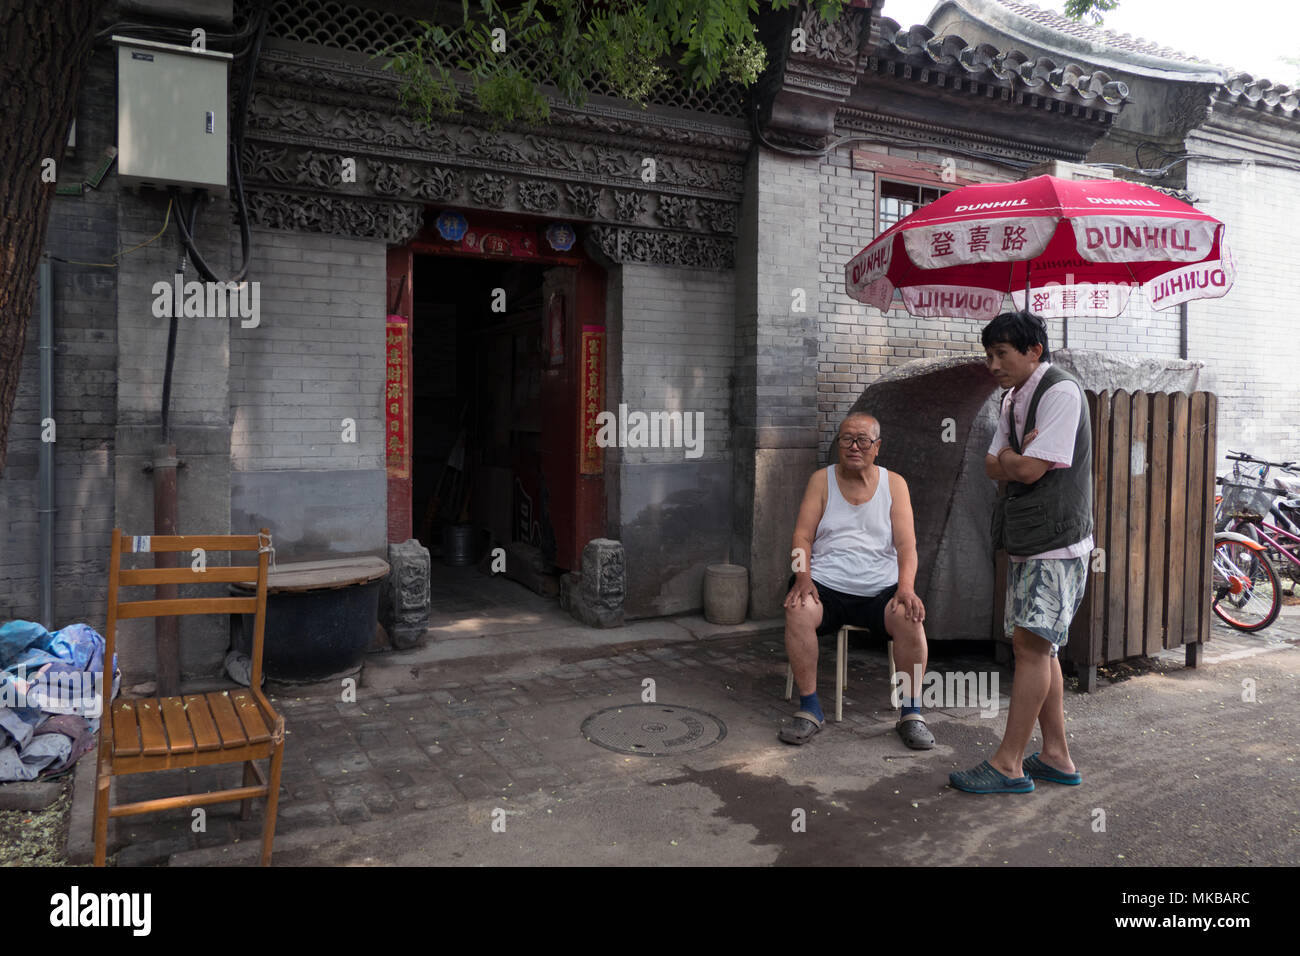 Daily life in a hutong (traditional old narrow street) of Beijing, China, Asia - Stock Image